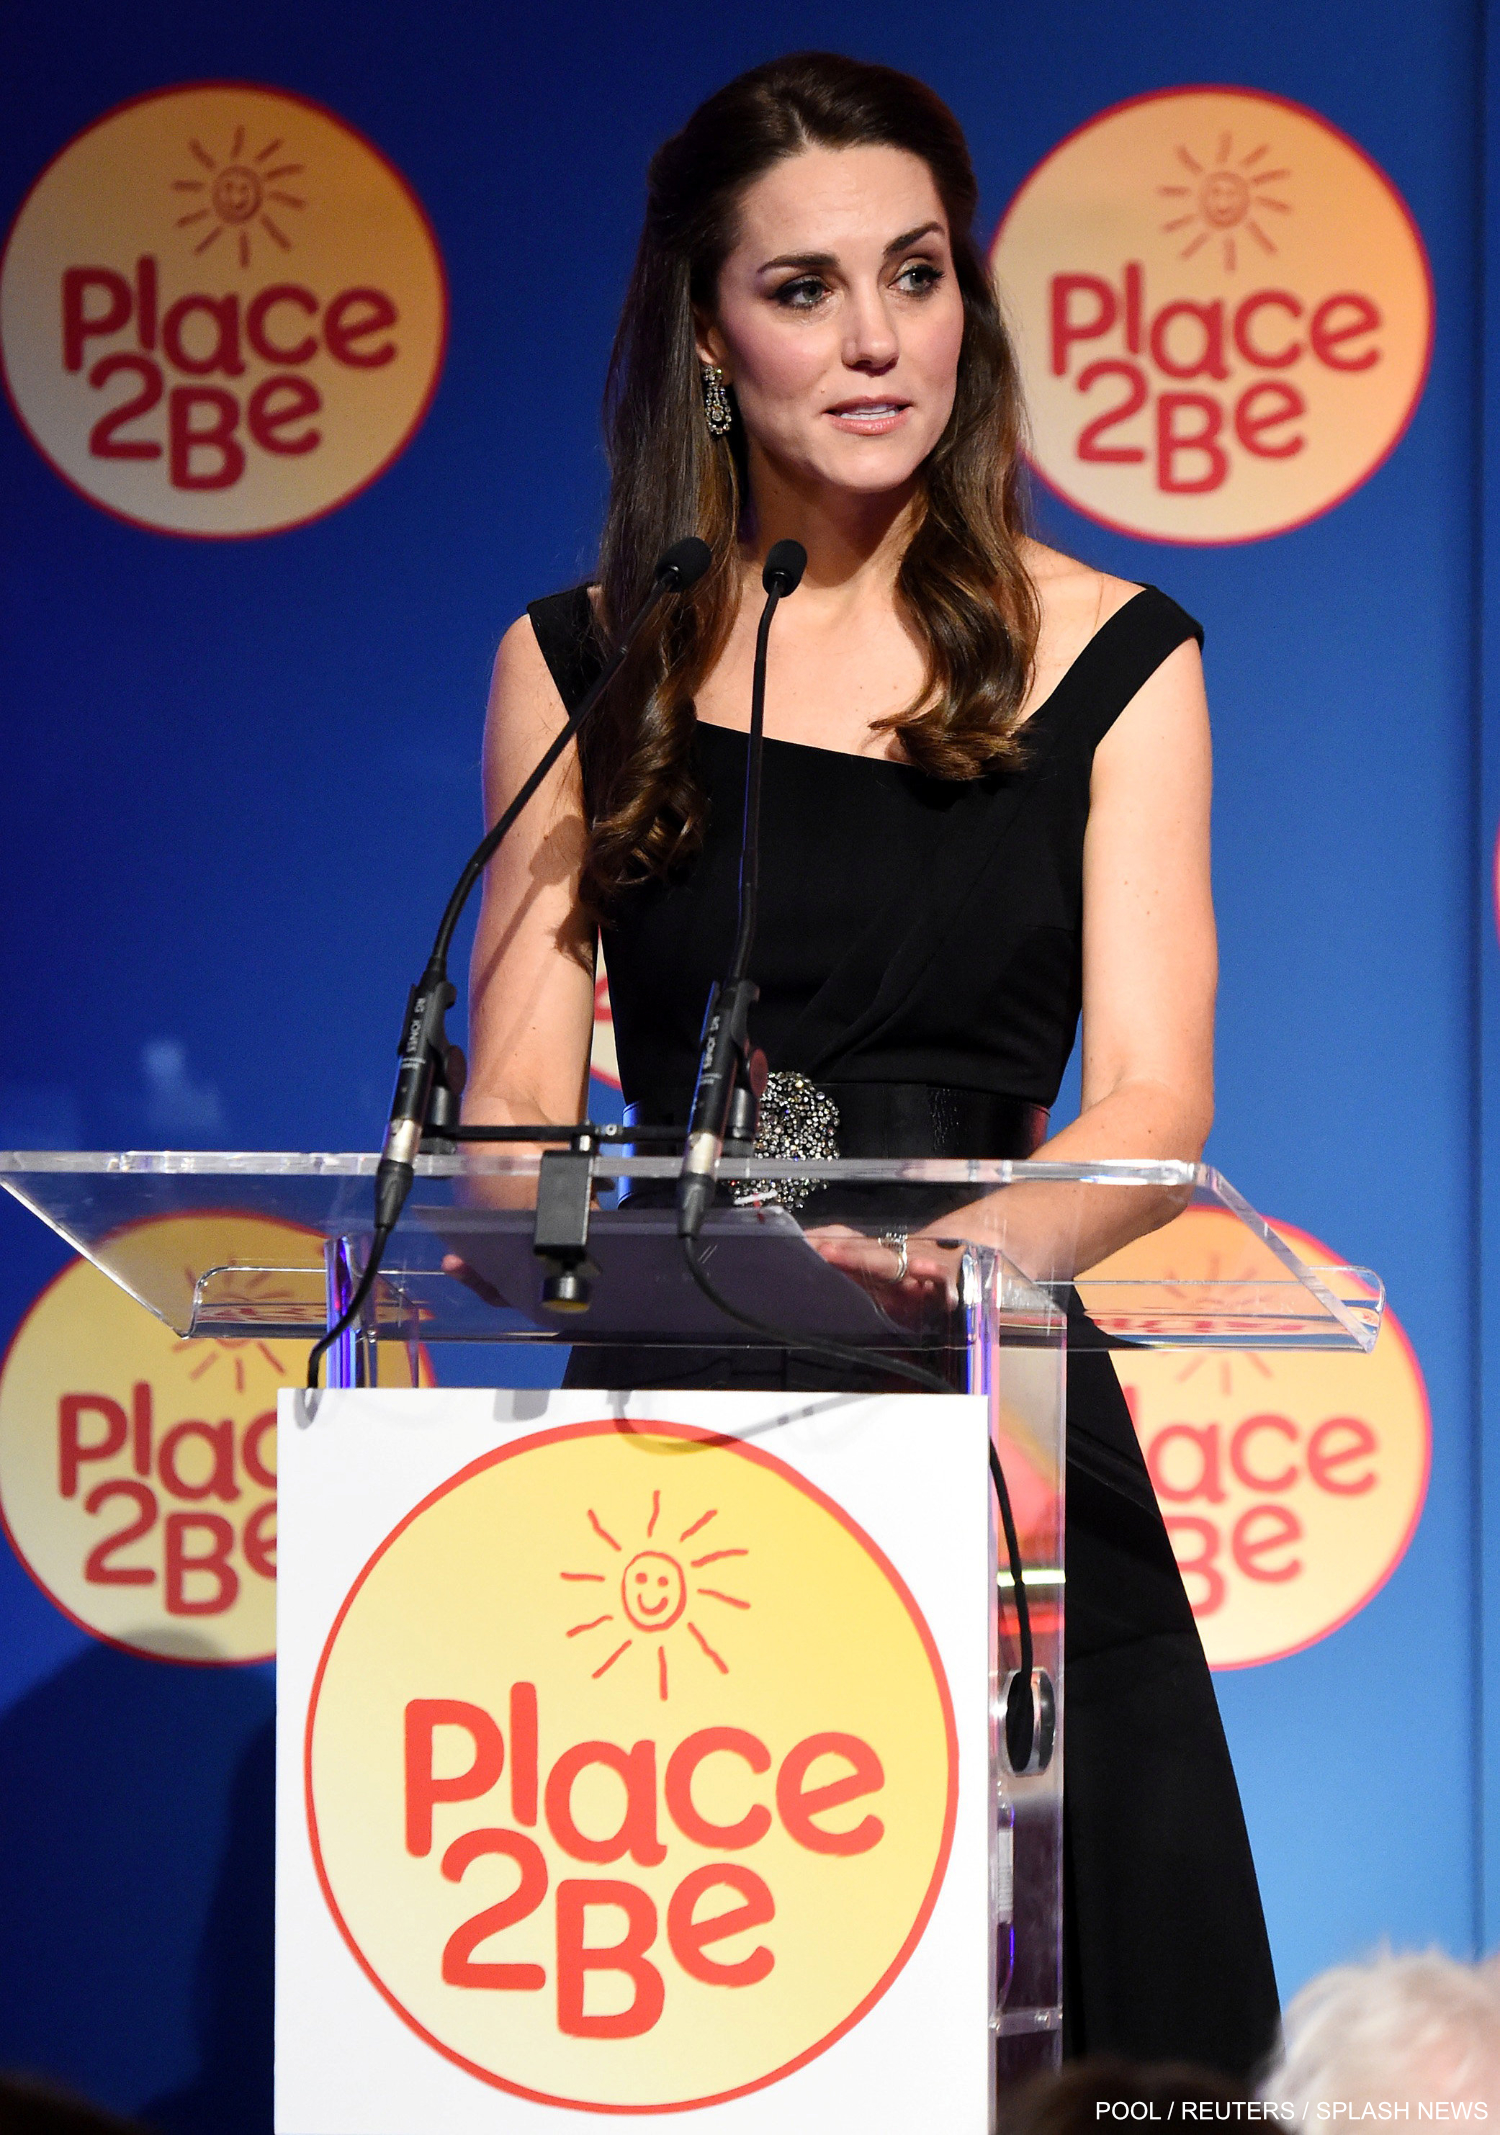 Kate Middleton attends the Place2Be awards